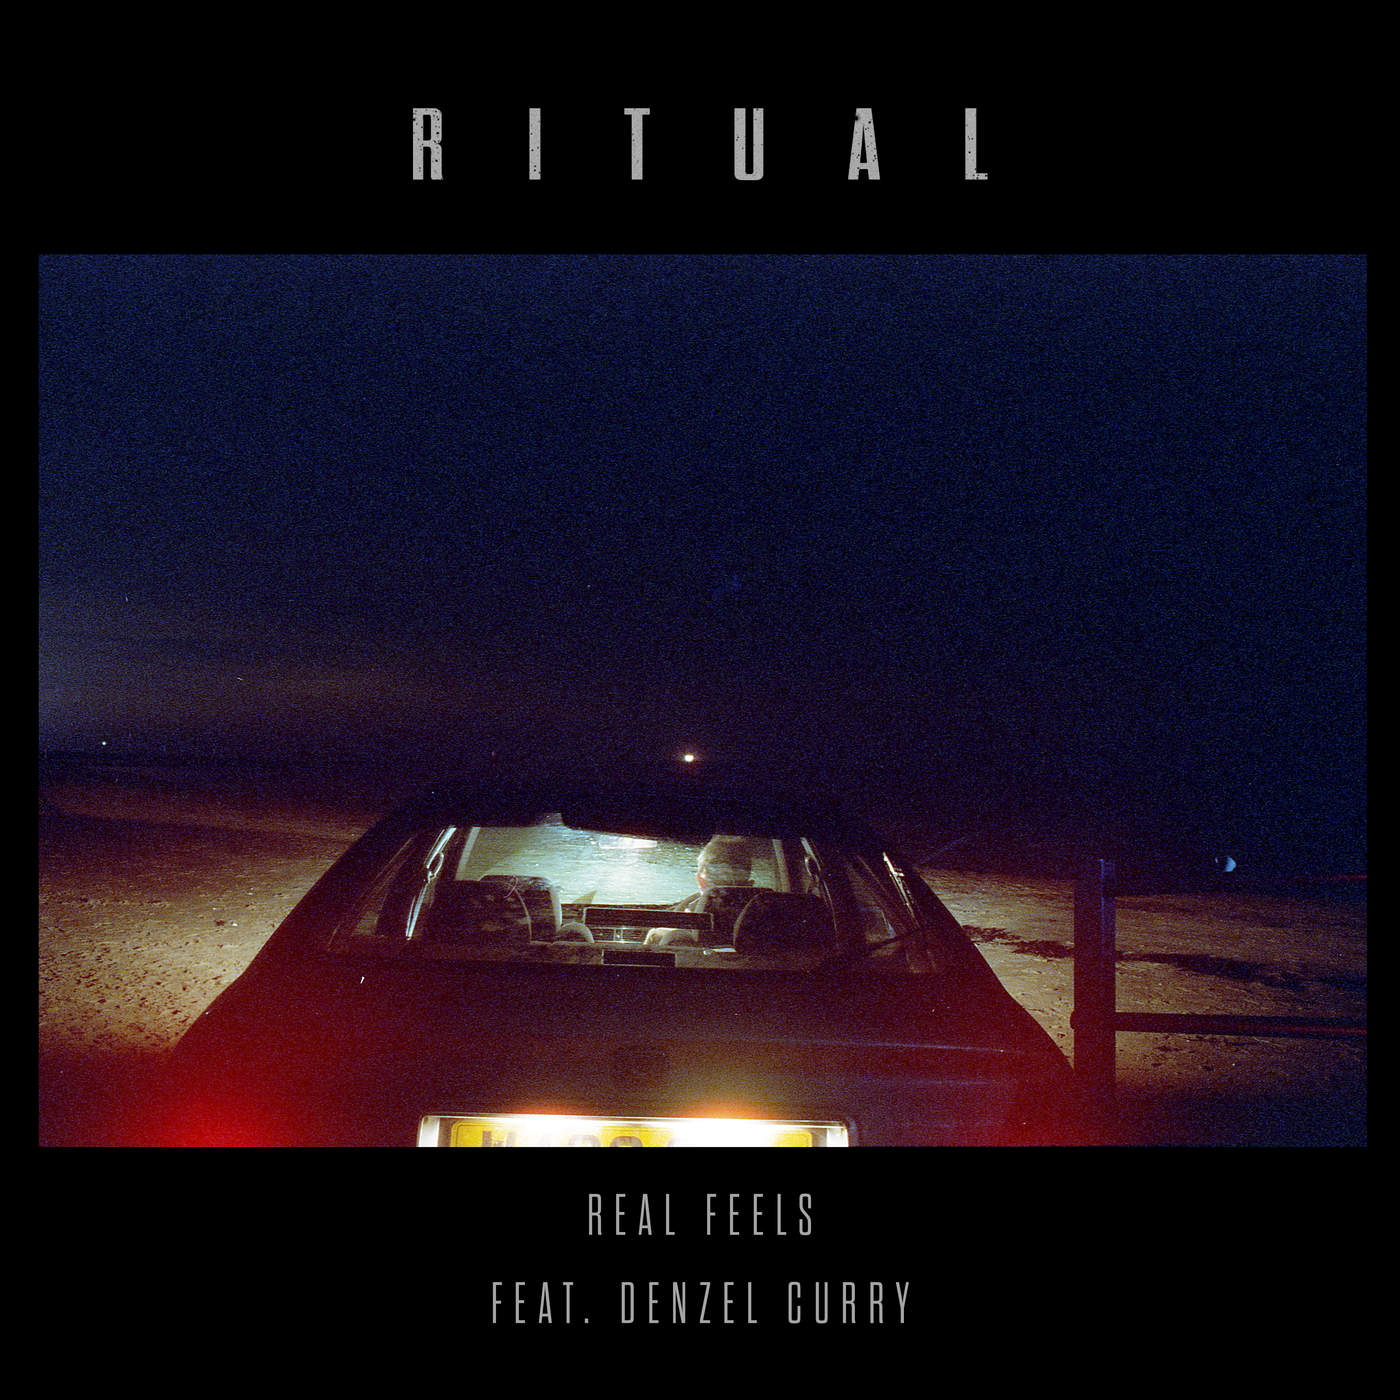 R I T U A L - Real Feels (feat. Denzel Curry) - Single Cover